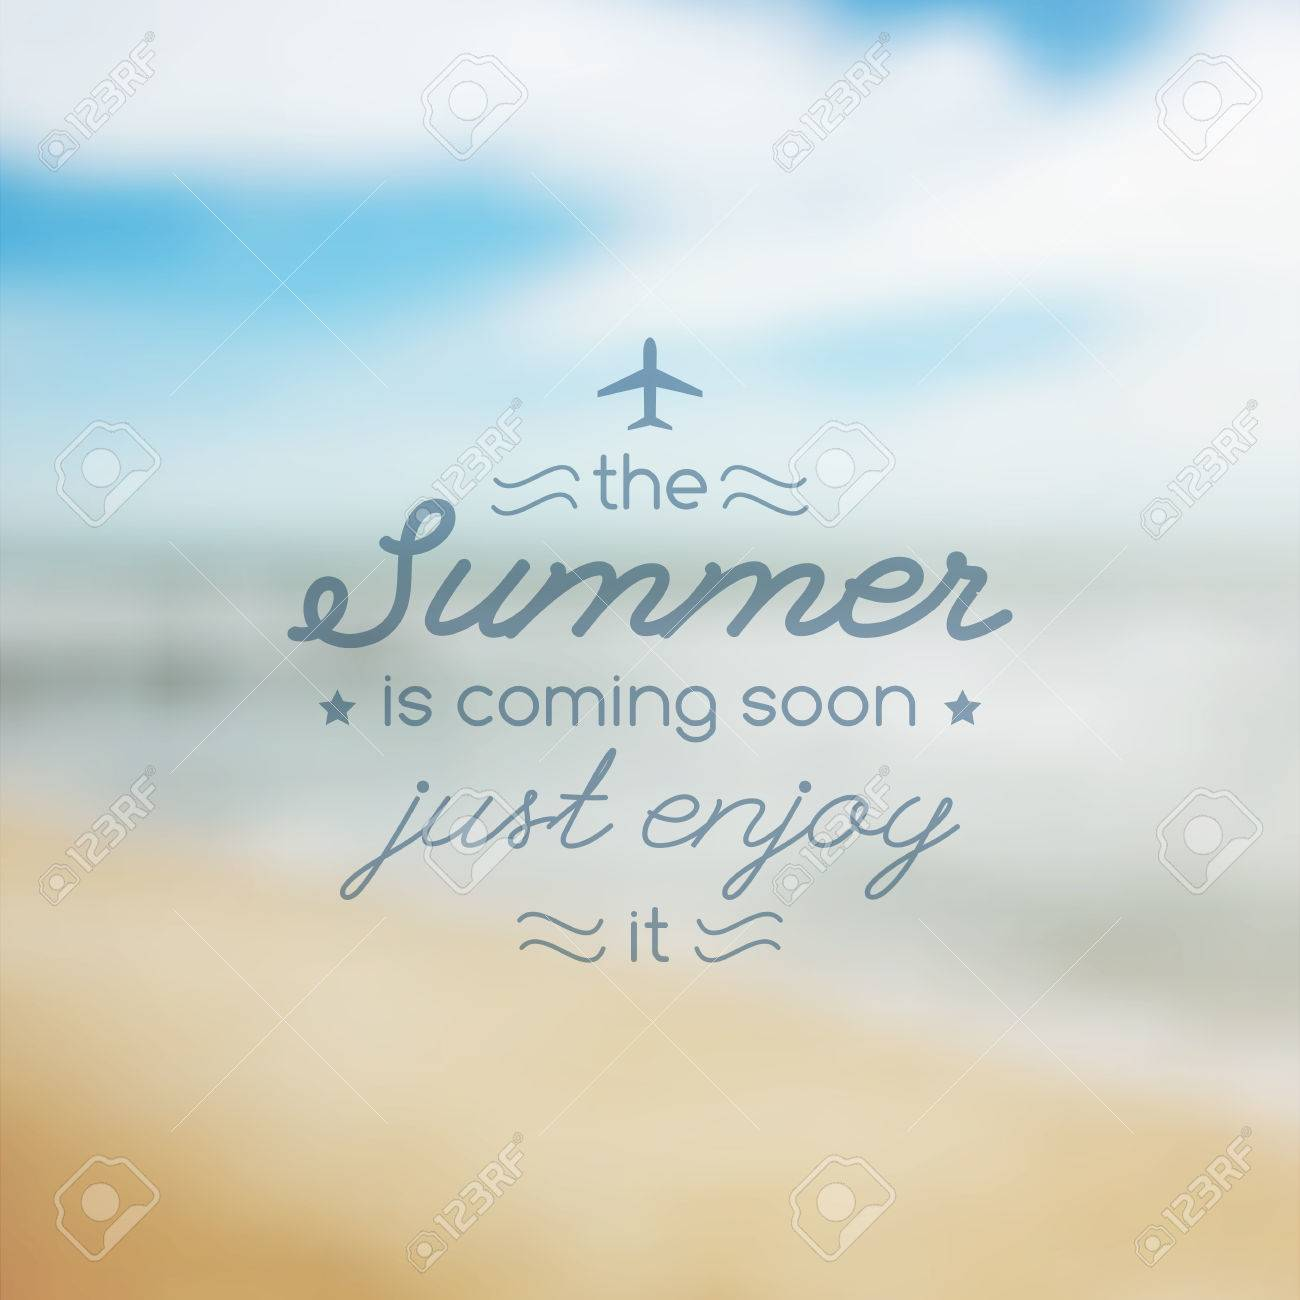 Summer Is Coming Soon, Vector Illustration With Text And Blurred Seascape  For Travel Design Stock